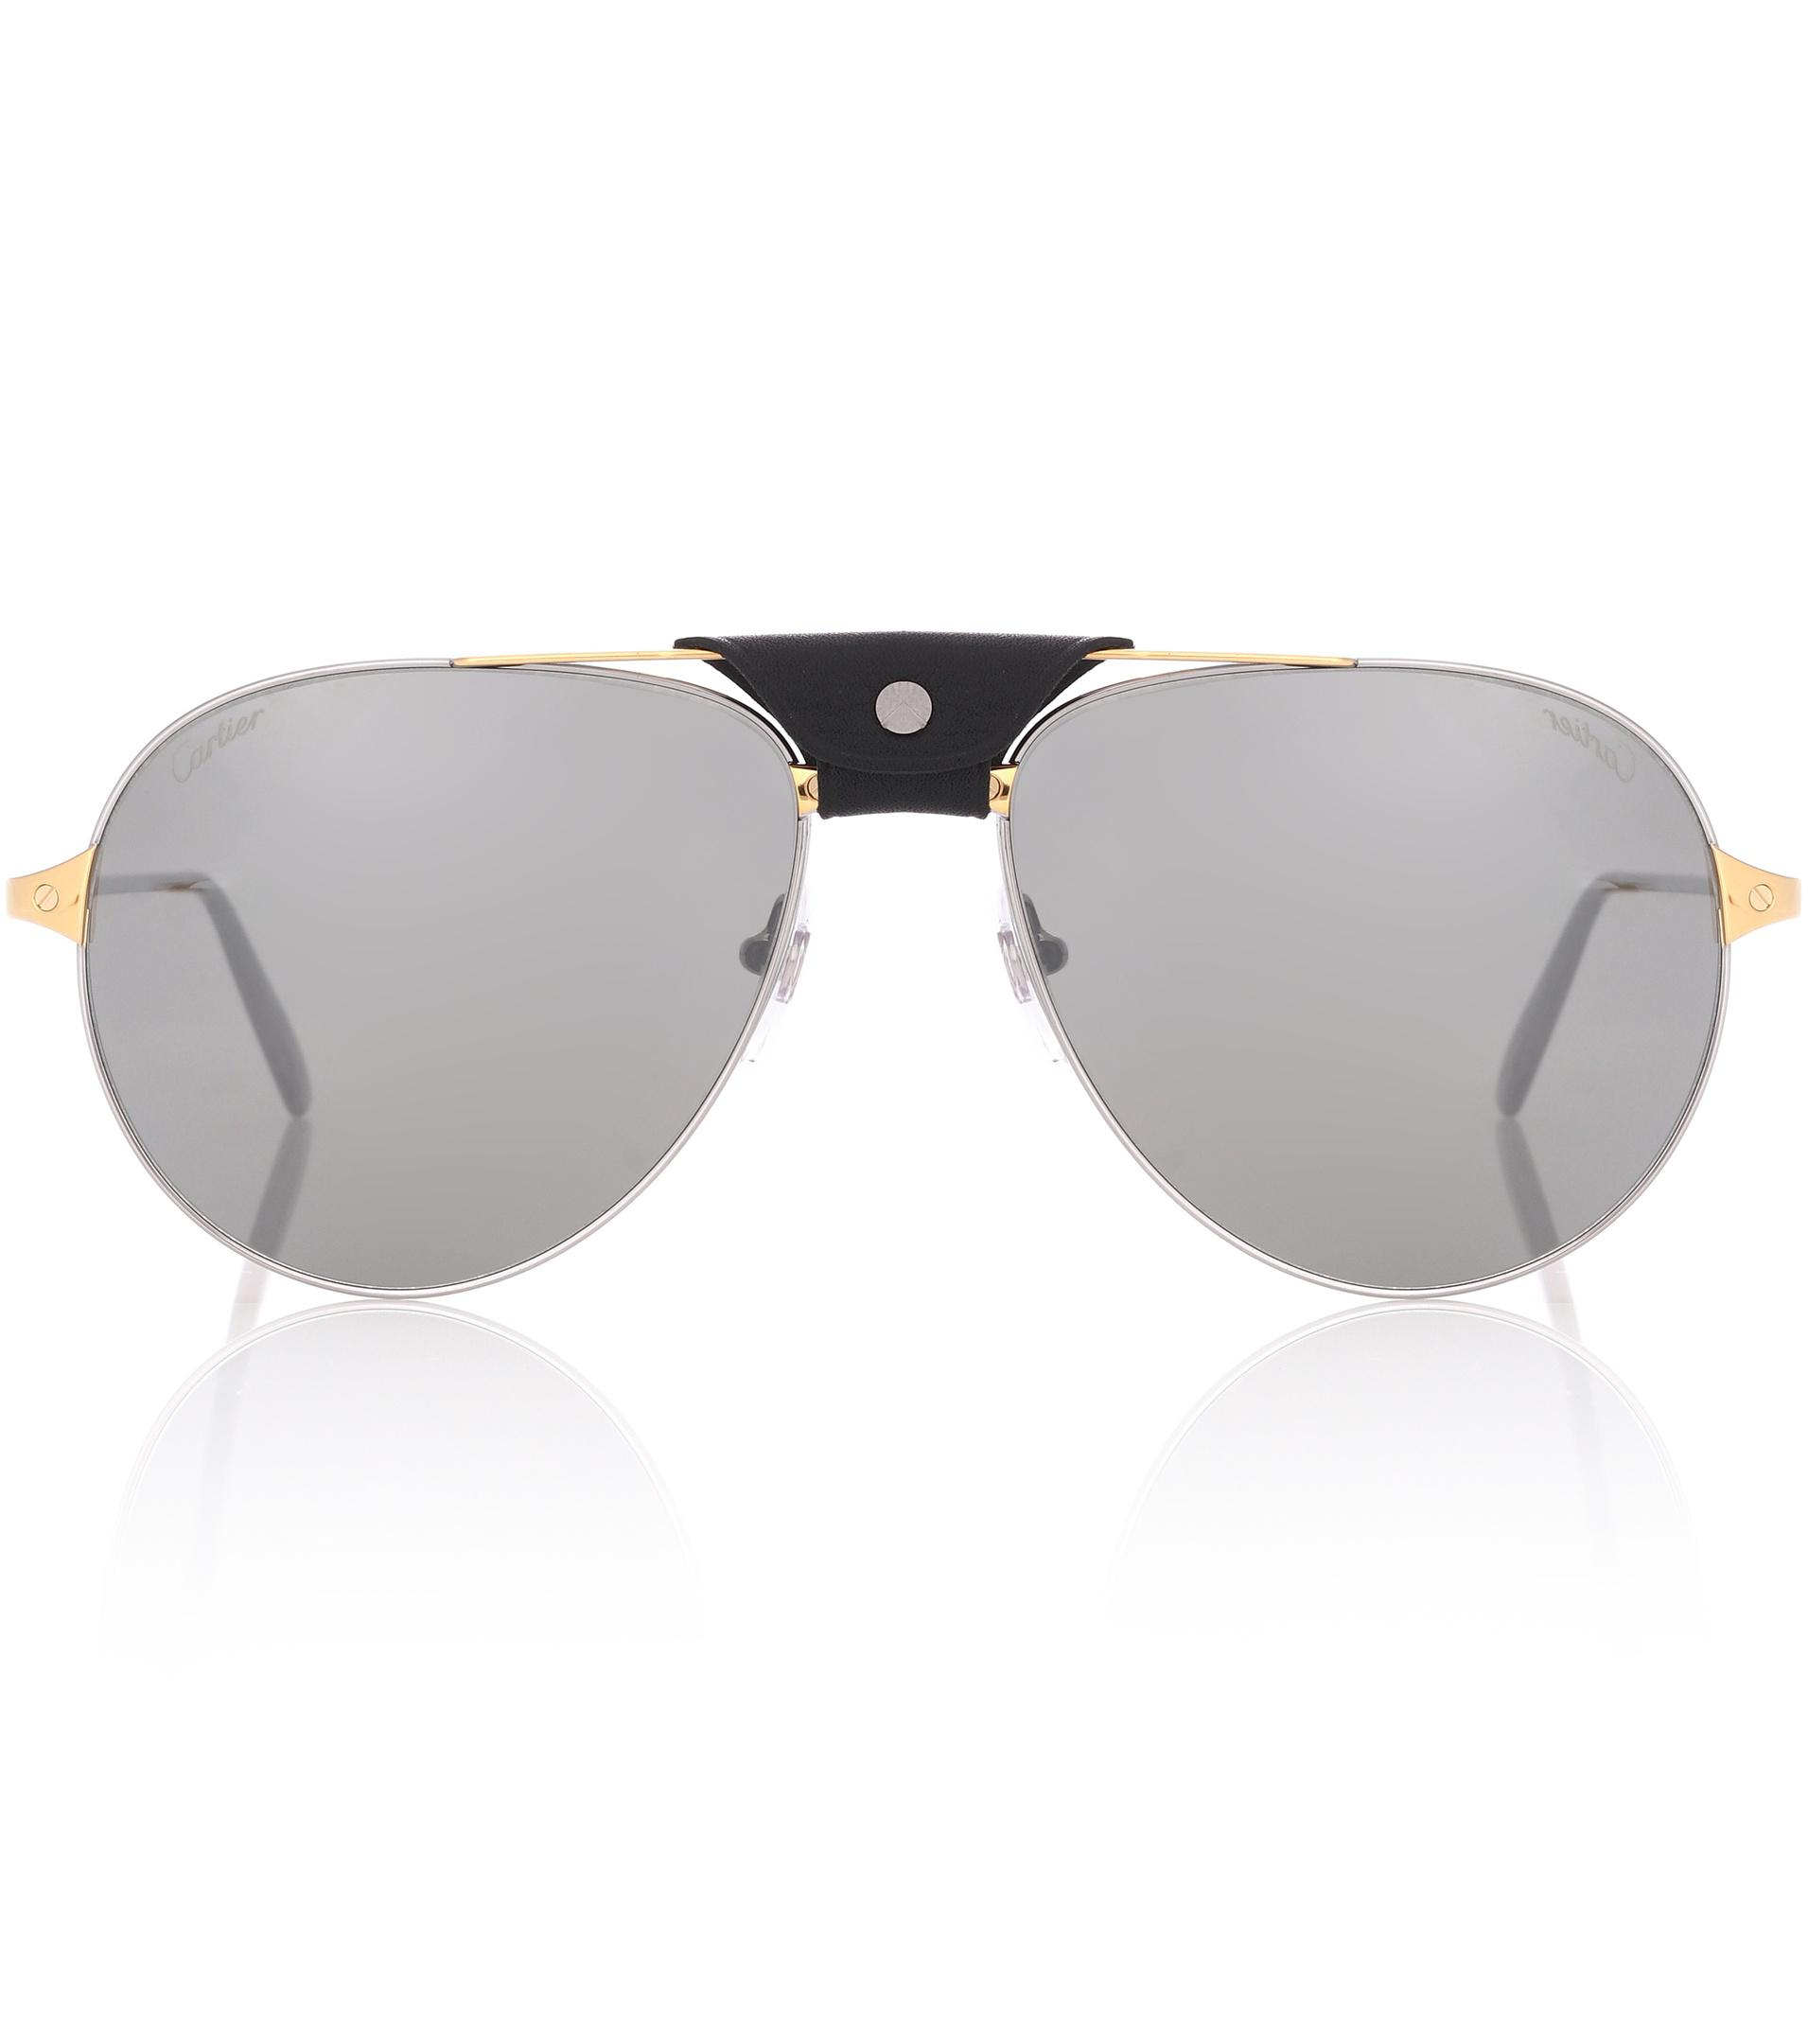 ad5c68bdda8 Lyst - Cartier Santos De Cartier Aviator Sunglasses in Metallic